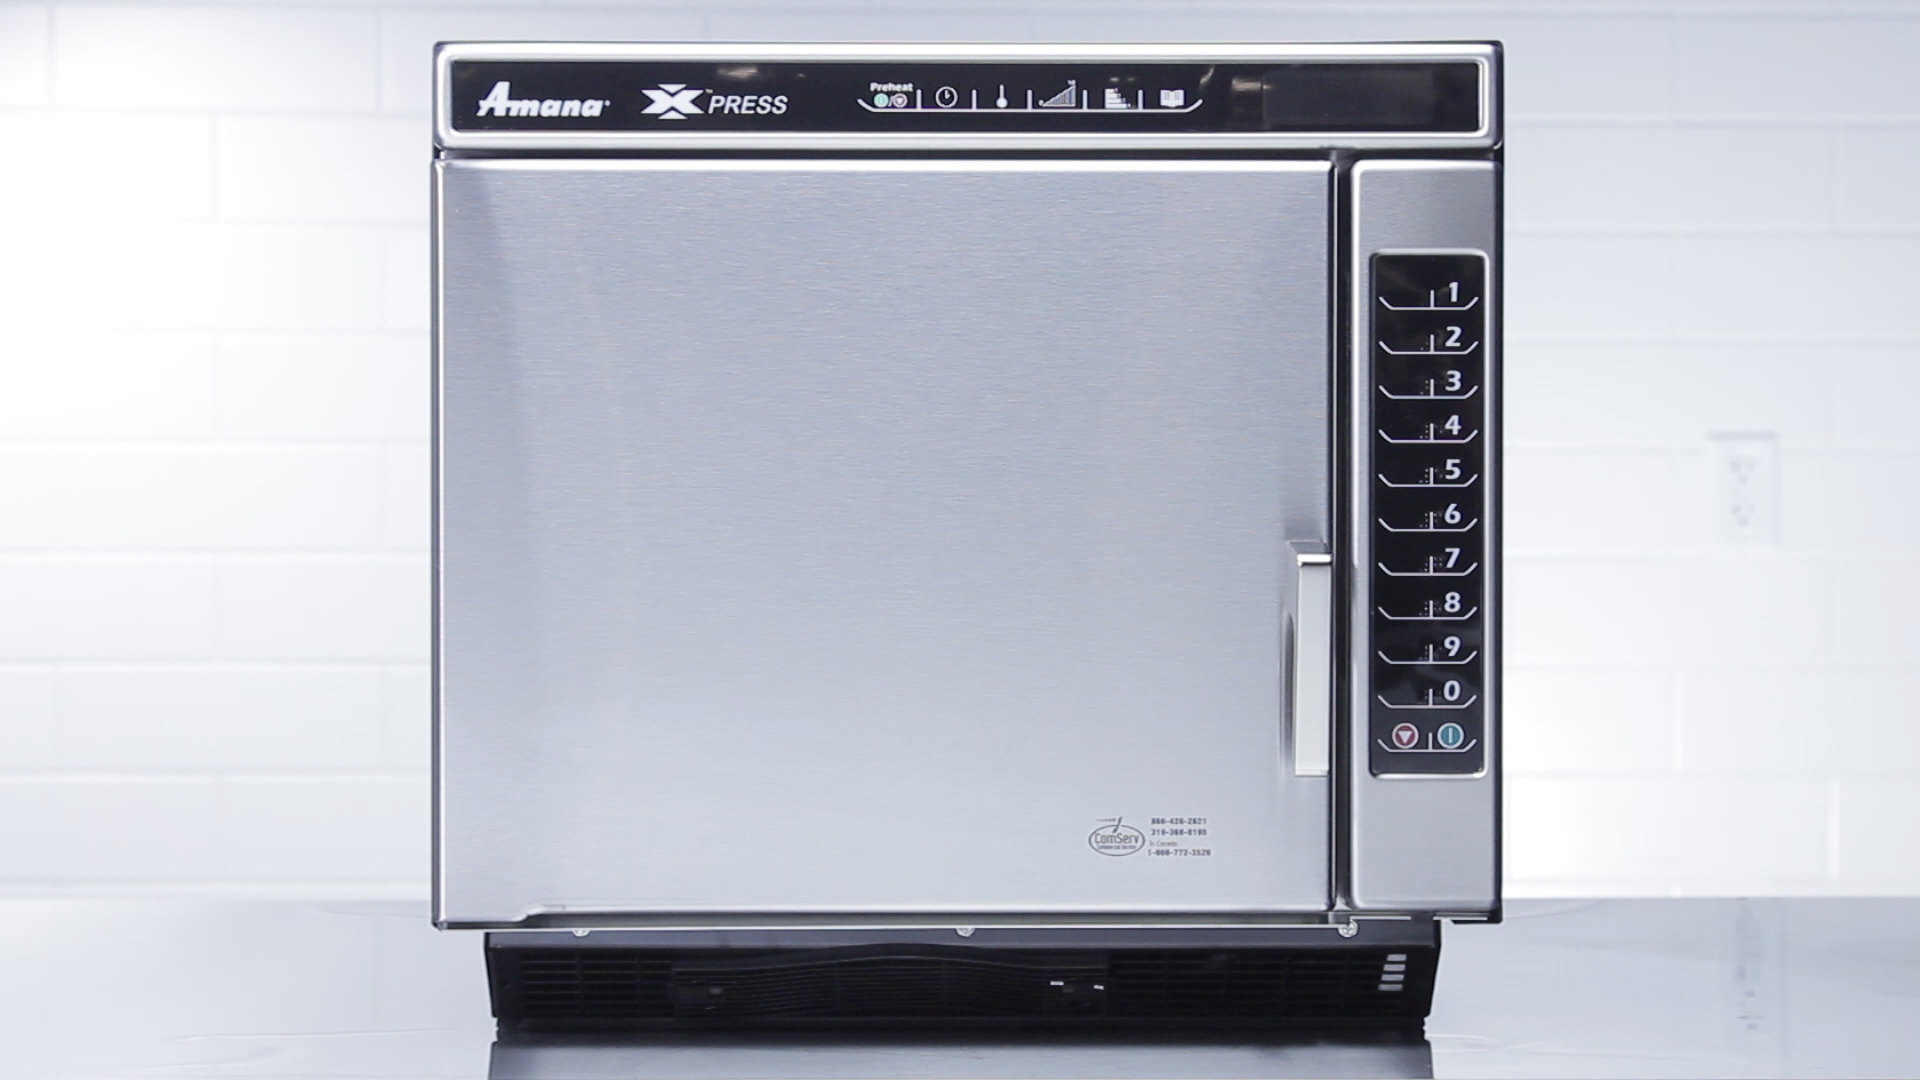 Amana Xpress Ace14n Jetwave High Sd Commercial Countertop Microwave Convection Oven Webstaurant Tv Video